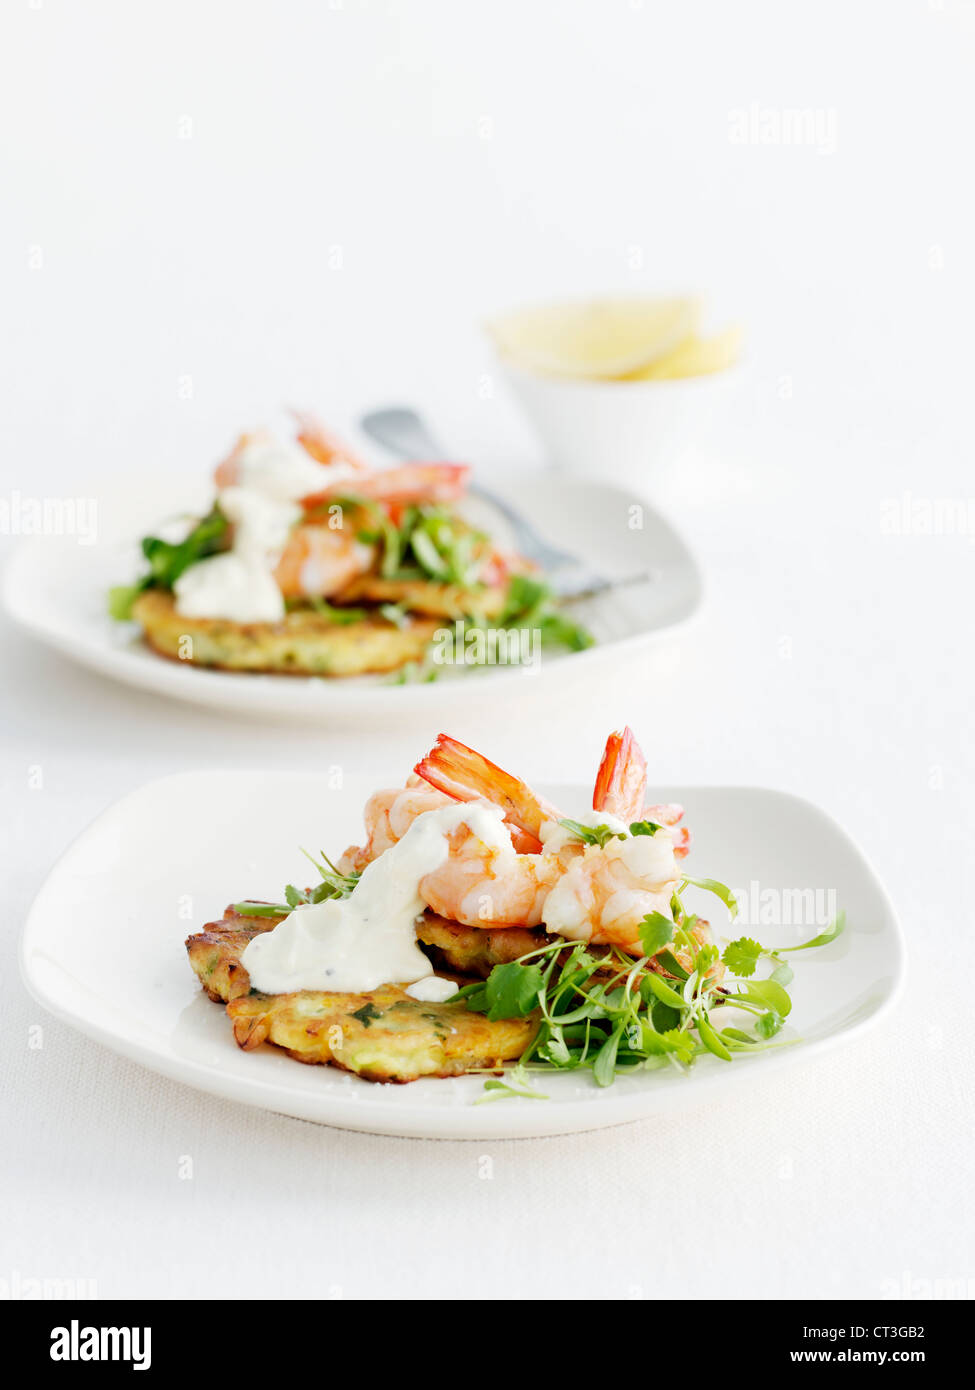 Plate of seafood with salad - Stock Image